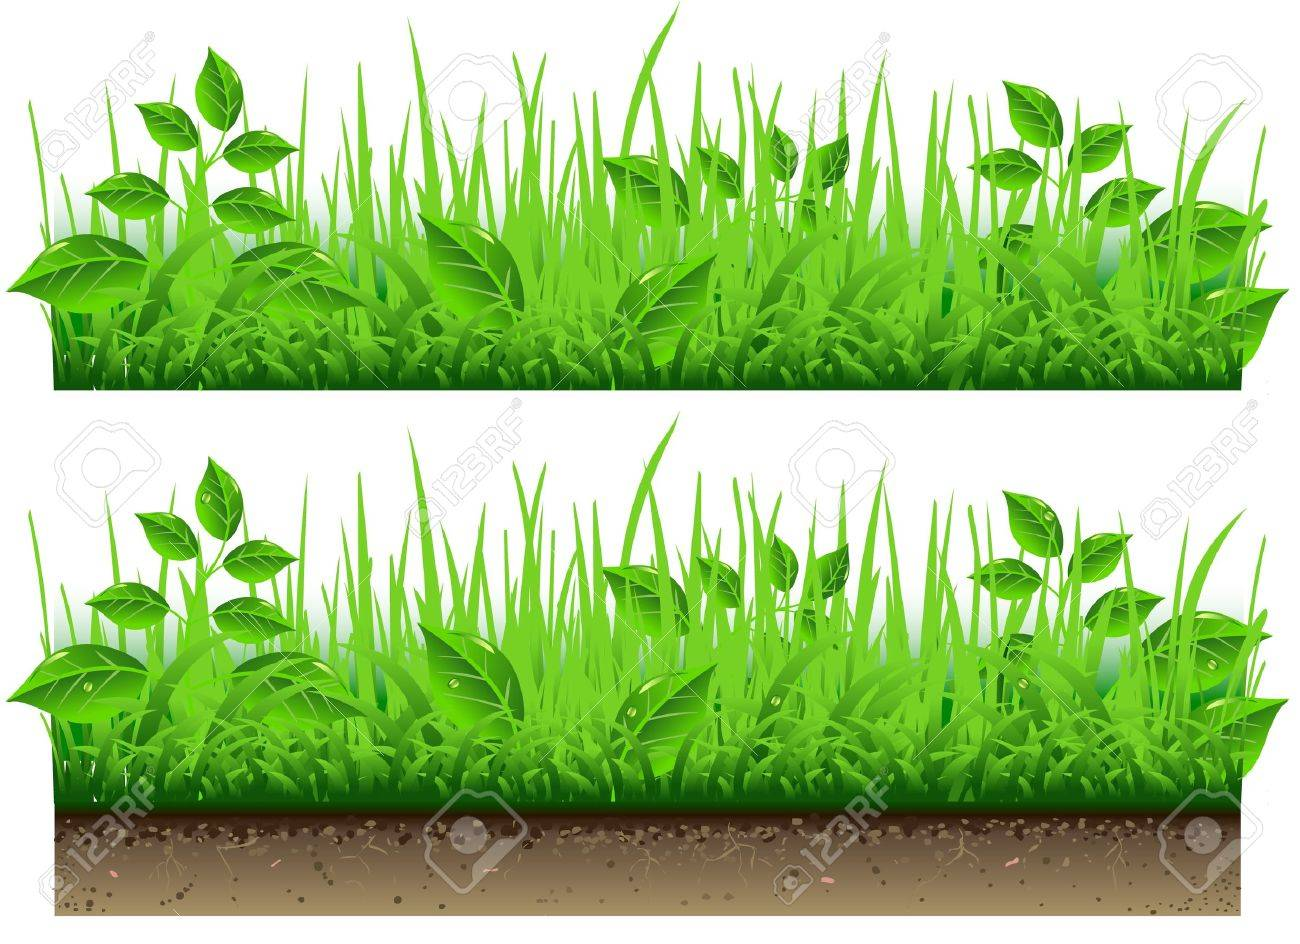 Detailed illustration of a Grass Border Stock Vector - 18239651